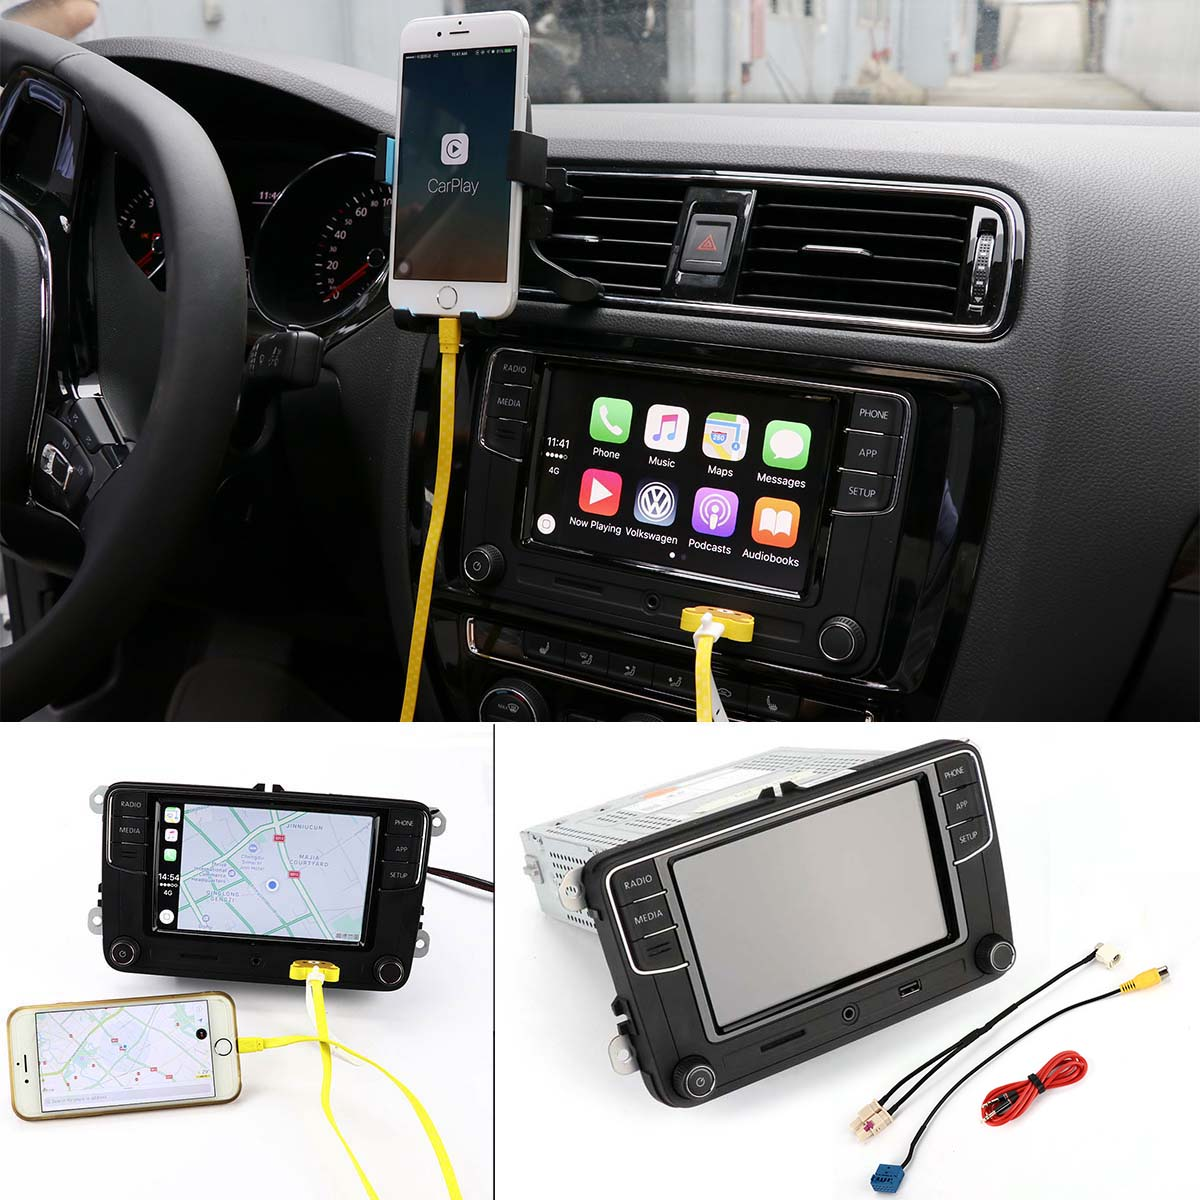 New 6.5 MIB Original CarPlay RCD330 Plus Car MIB Radio Mirrorlink for Volkswagen VW w/Cable 6RD 035 187 B Version B home improvement pneumatic air 2 way quick fittings push connector tube hose plastic 4mm 6mm 8mm 10mm 12mm pneumatic parts page 2